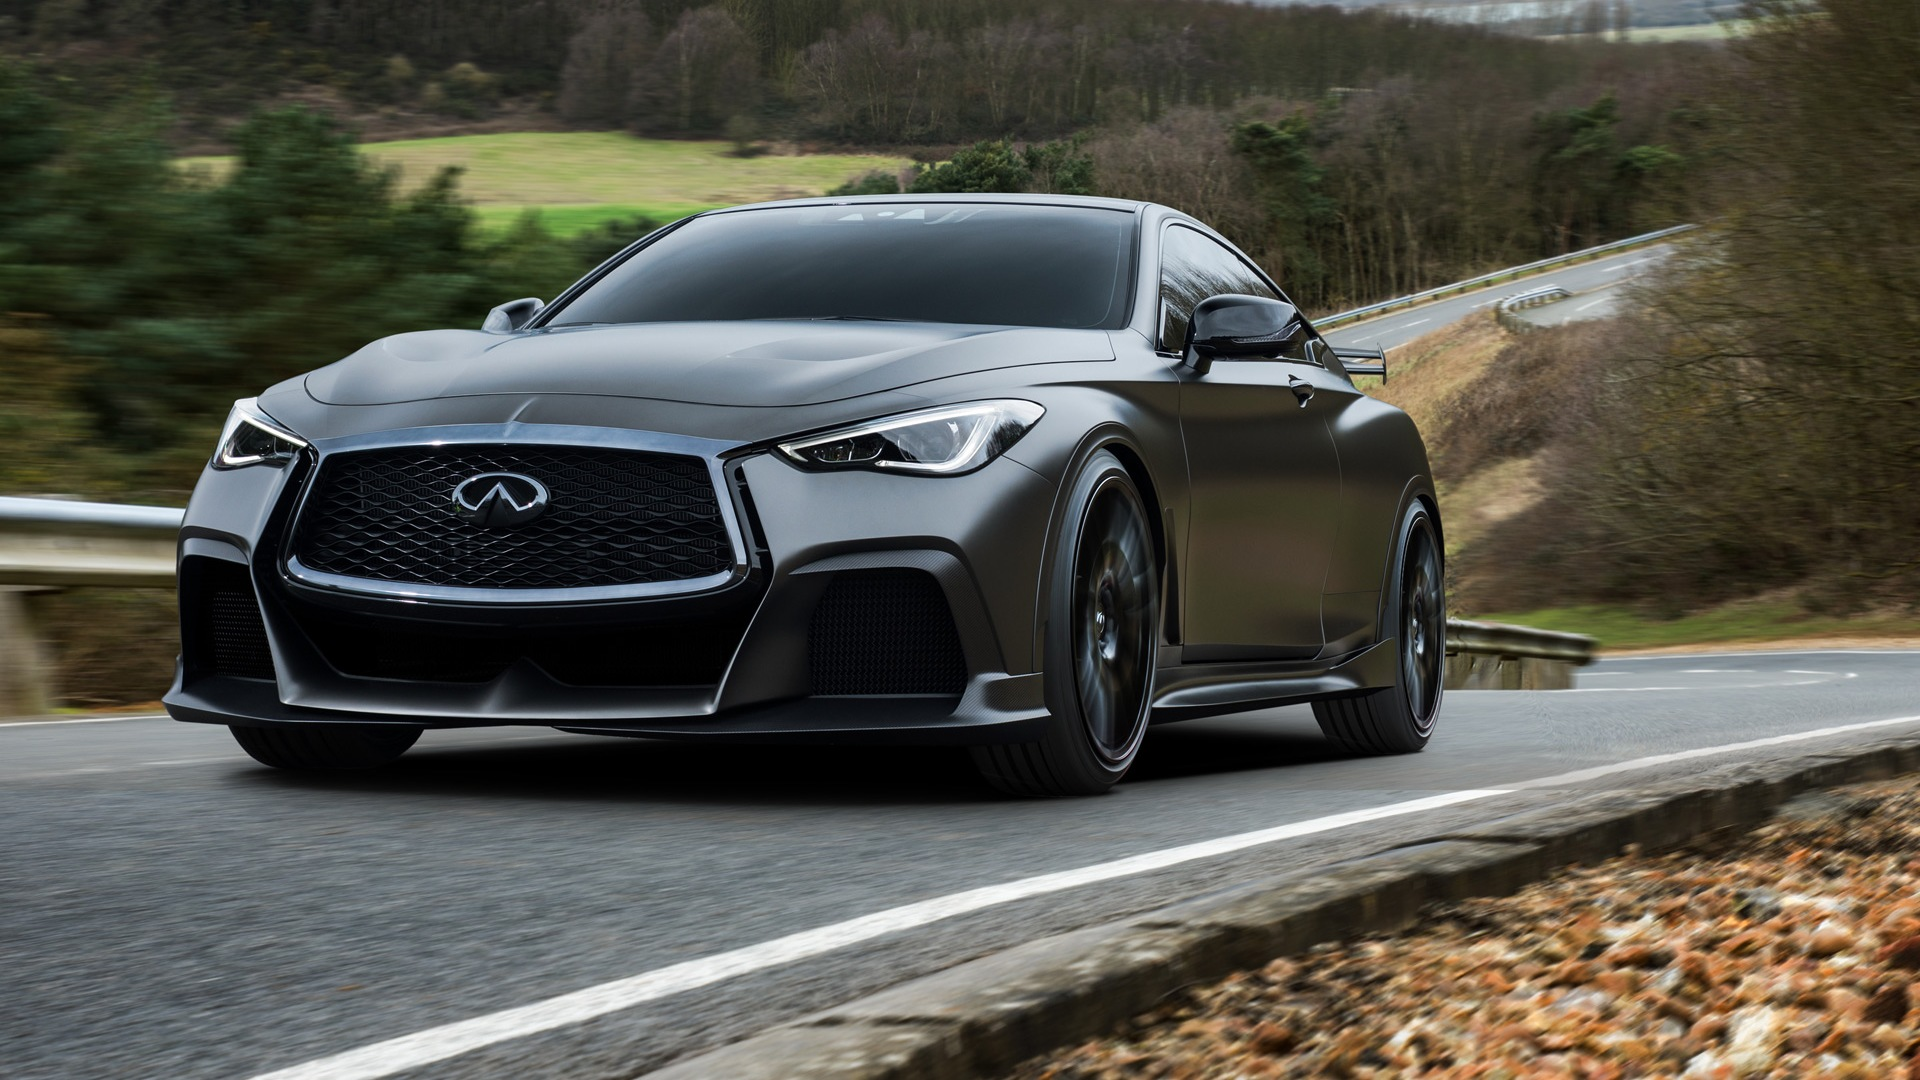 43 The Best 2020 Infiniti Q60 Coupe Exterior